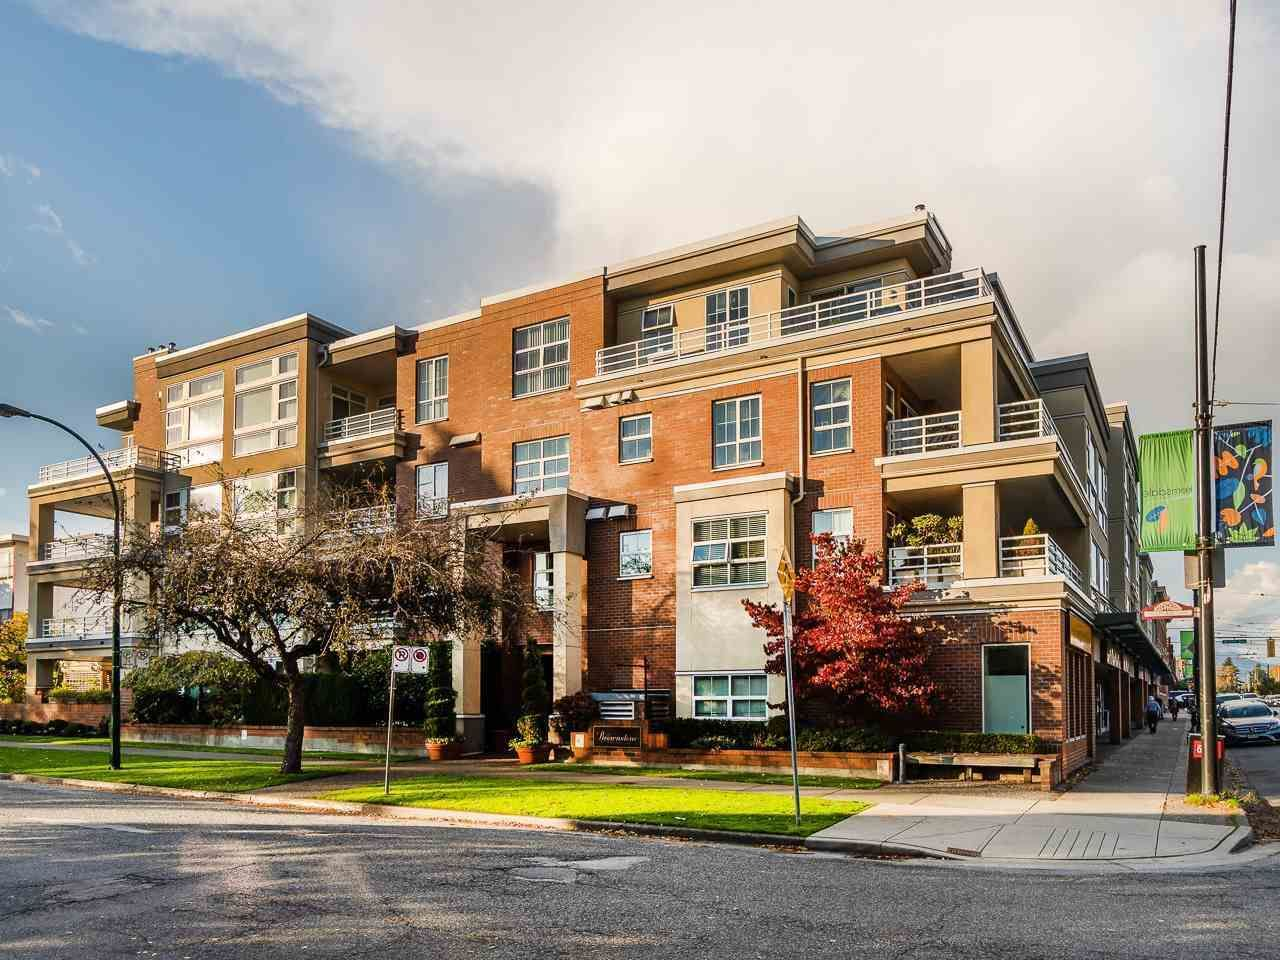 """Main Photo: 210 2105 W 42ND Avenue in Vancouver: Kerrisdale Condo for sale in """"BROWNSTONE"""" (Vancouver West)  : MLS®# R2582976"""